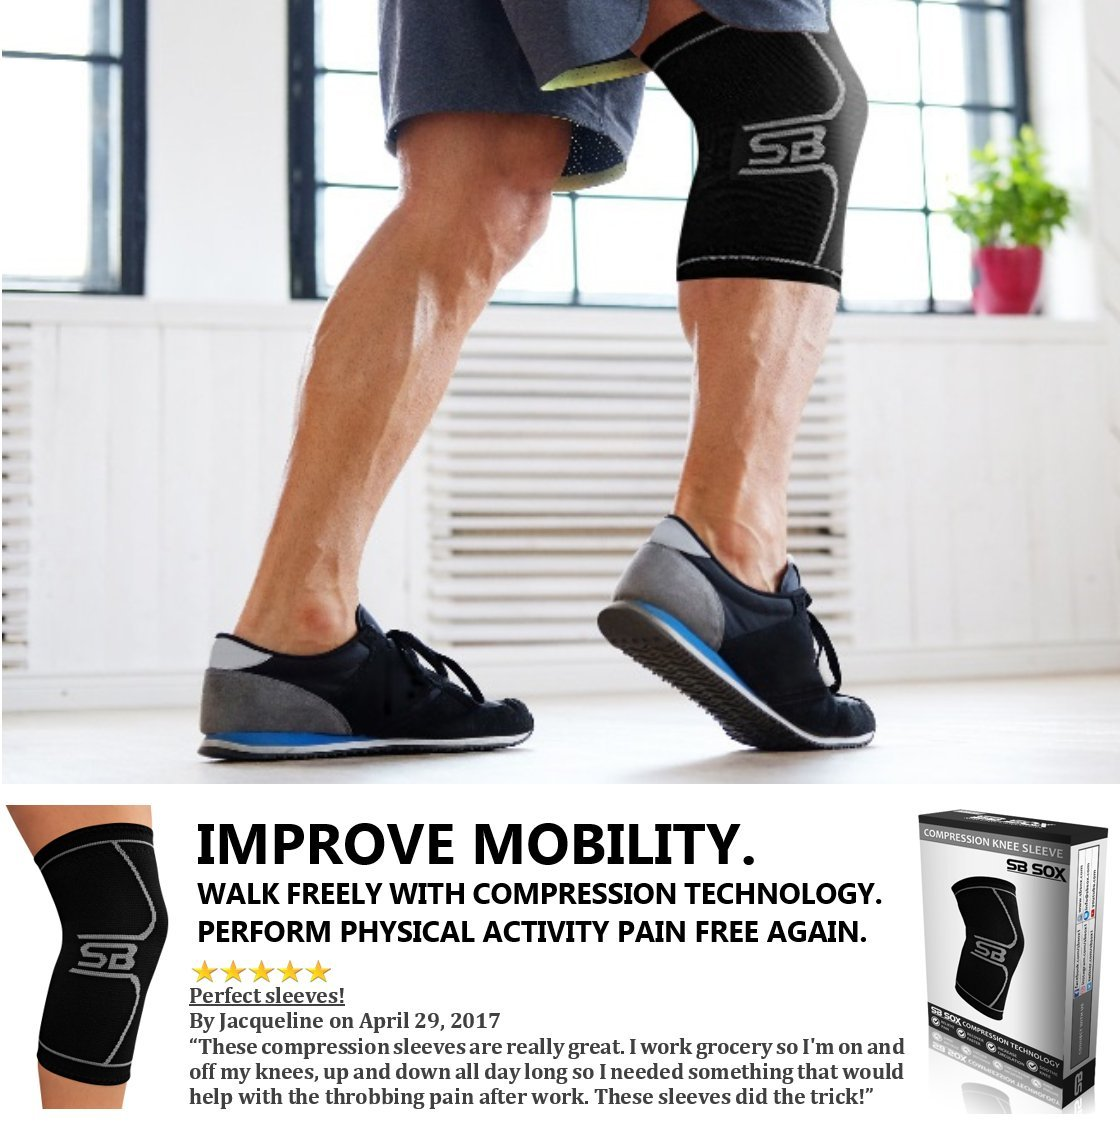 Amazon sb sox compression knee brace for knee pain braces and amazon sb sox compression knee brace for knee pain braces and supports knee for pain relief meniscus tear arthritis injury running joint pain solutioingenieria Choice Image